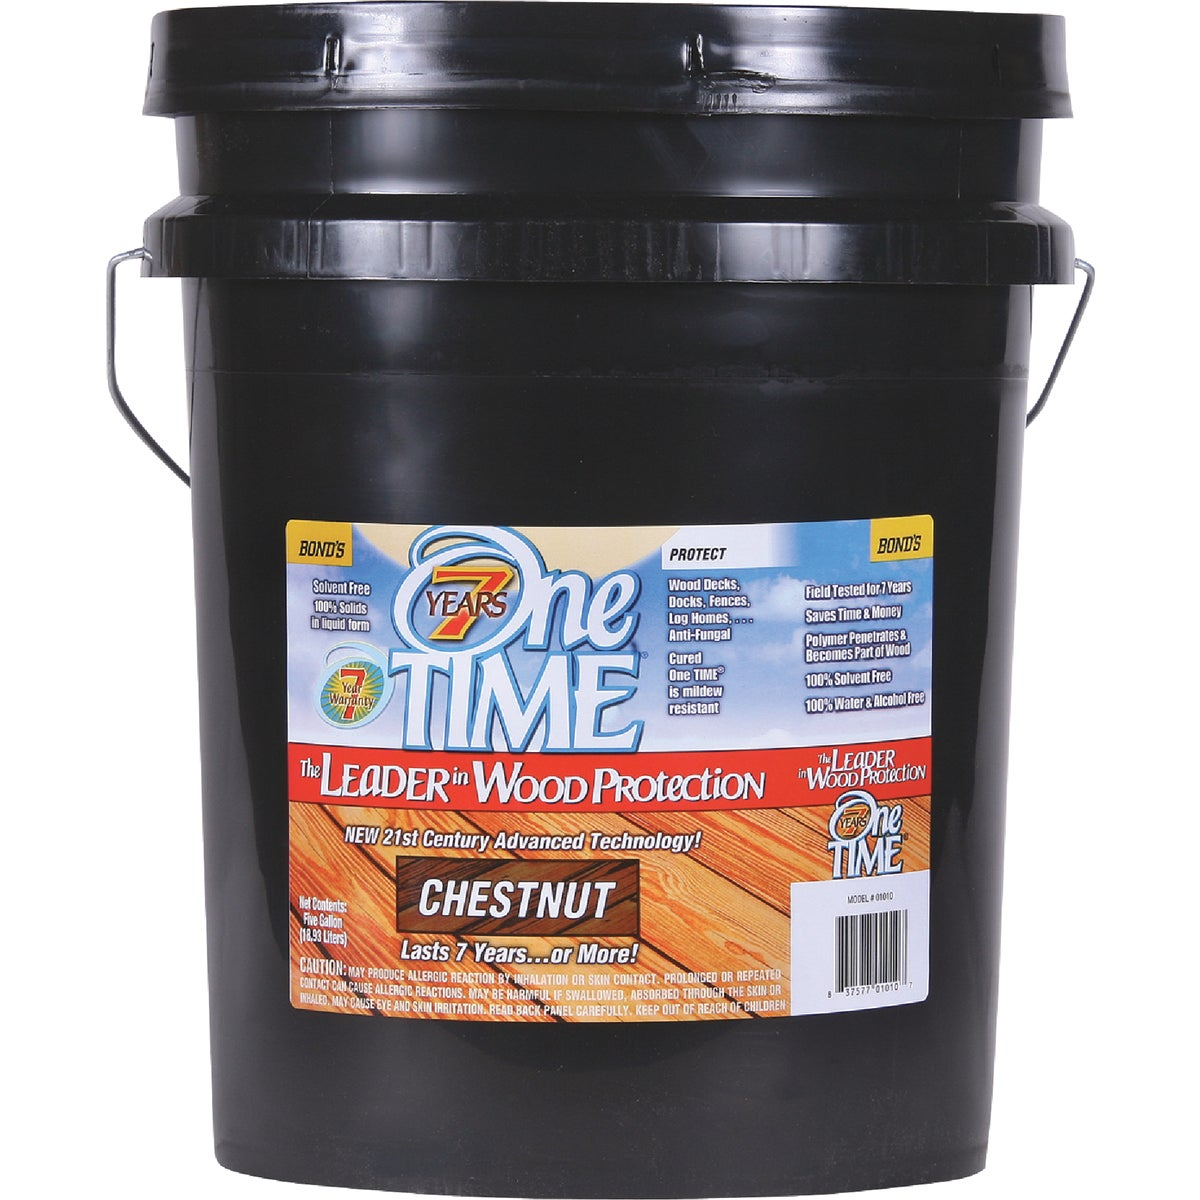 CHESTNUT WOOD SEALER - 01010 by Bond Distributing